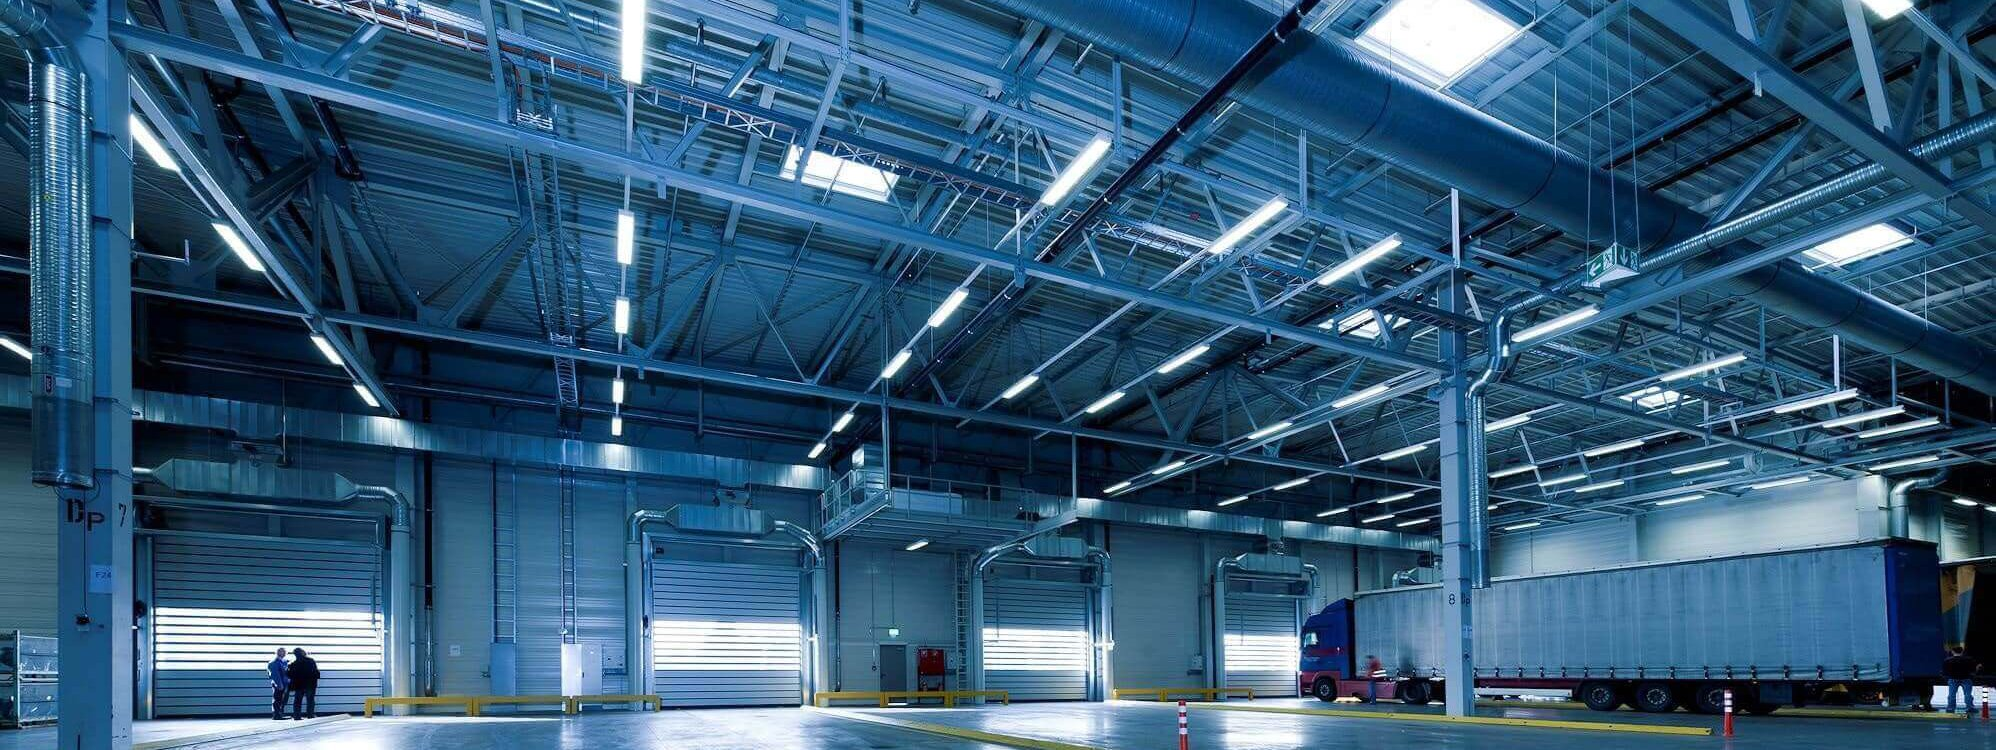 Commercial LED Lighting Solutions for a warehouse